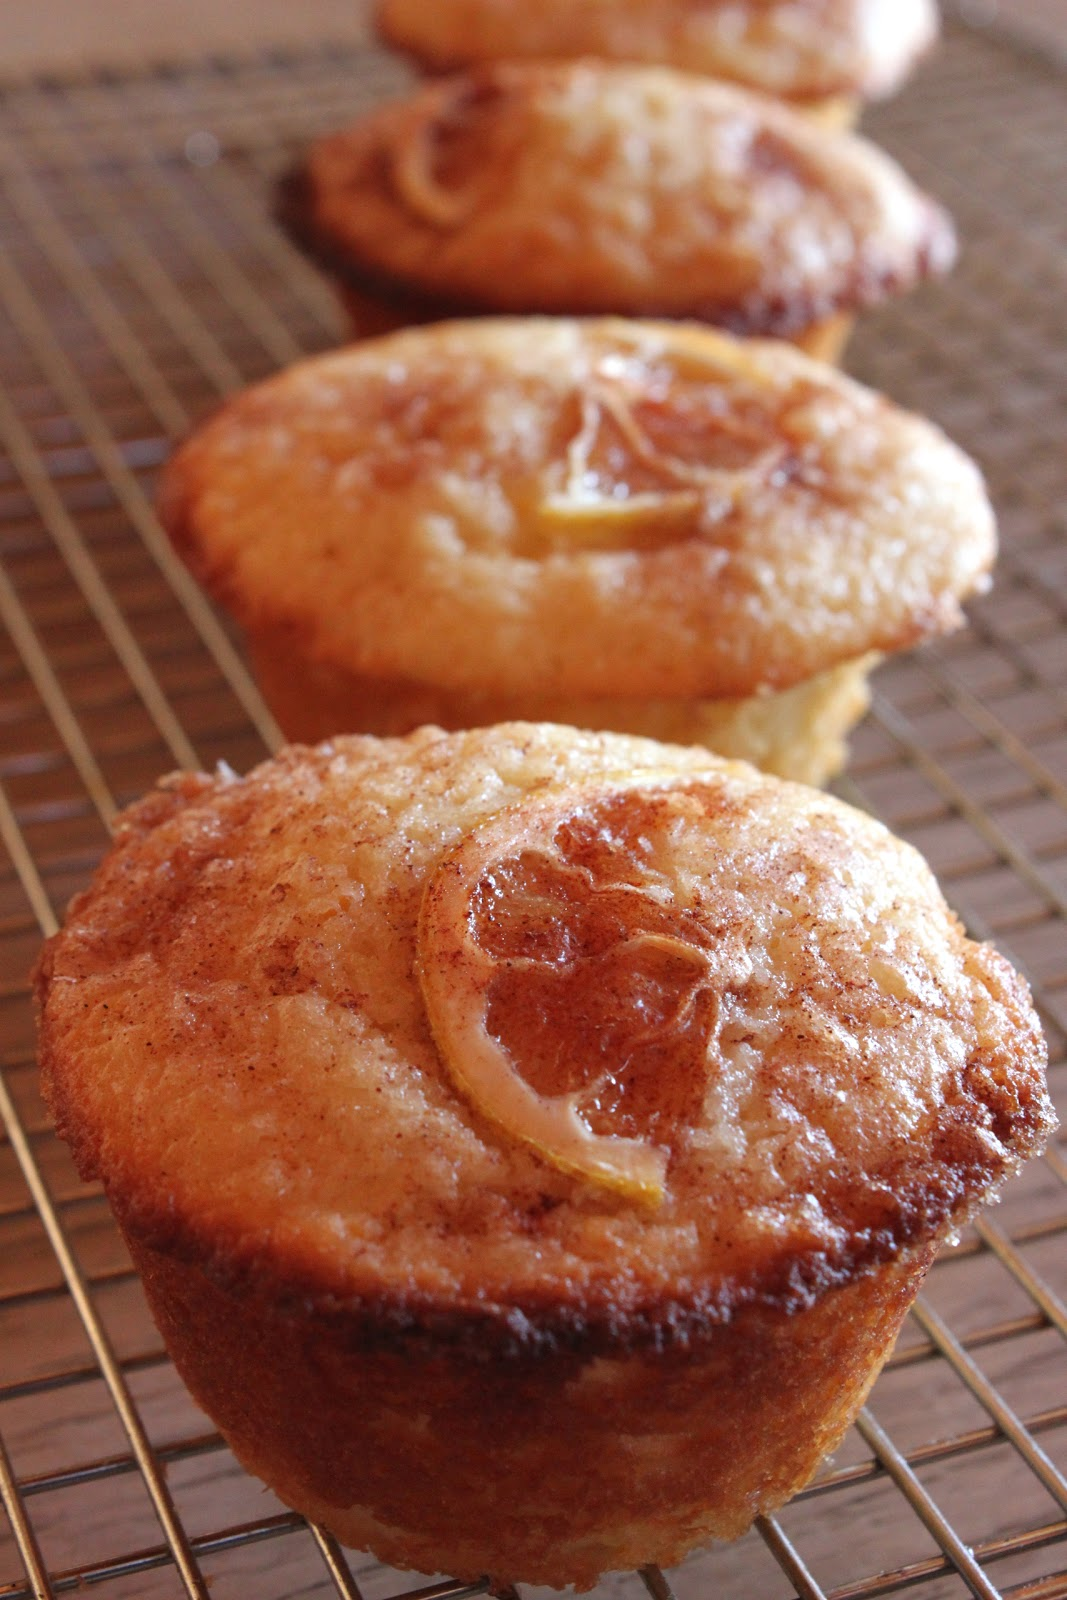 Meyer lemon muffins from the Los Angeles Times